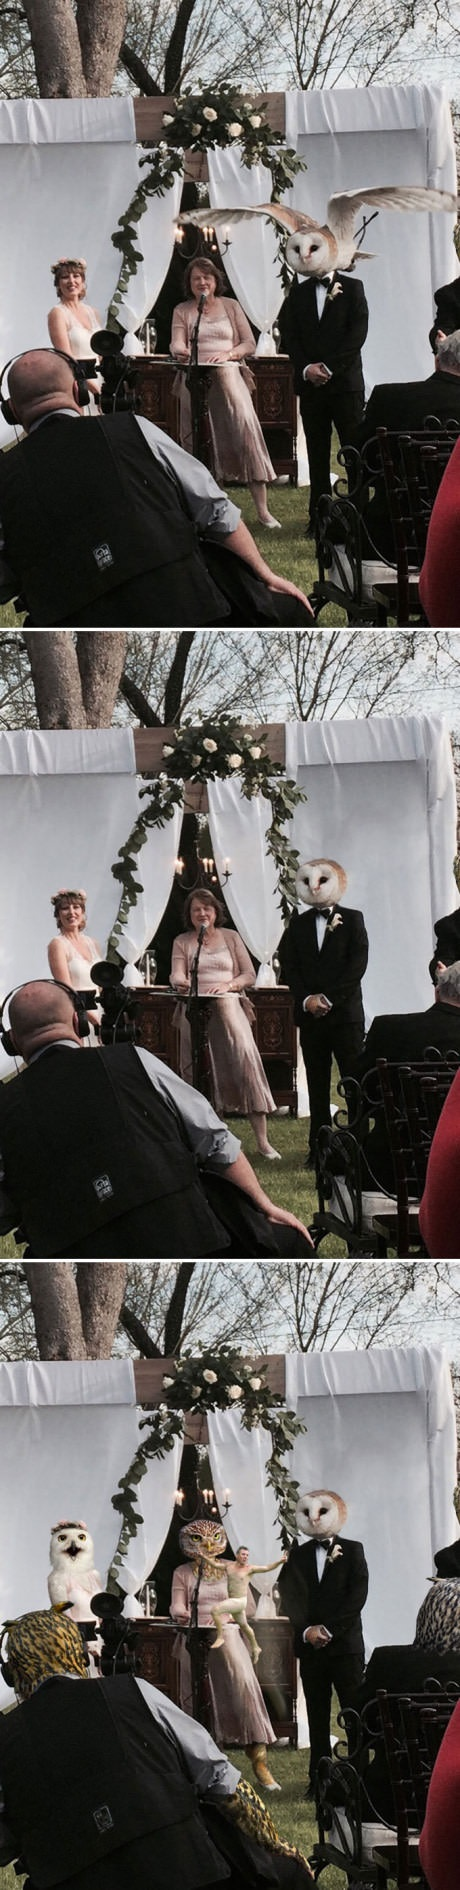 owl-wedding-photobomb